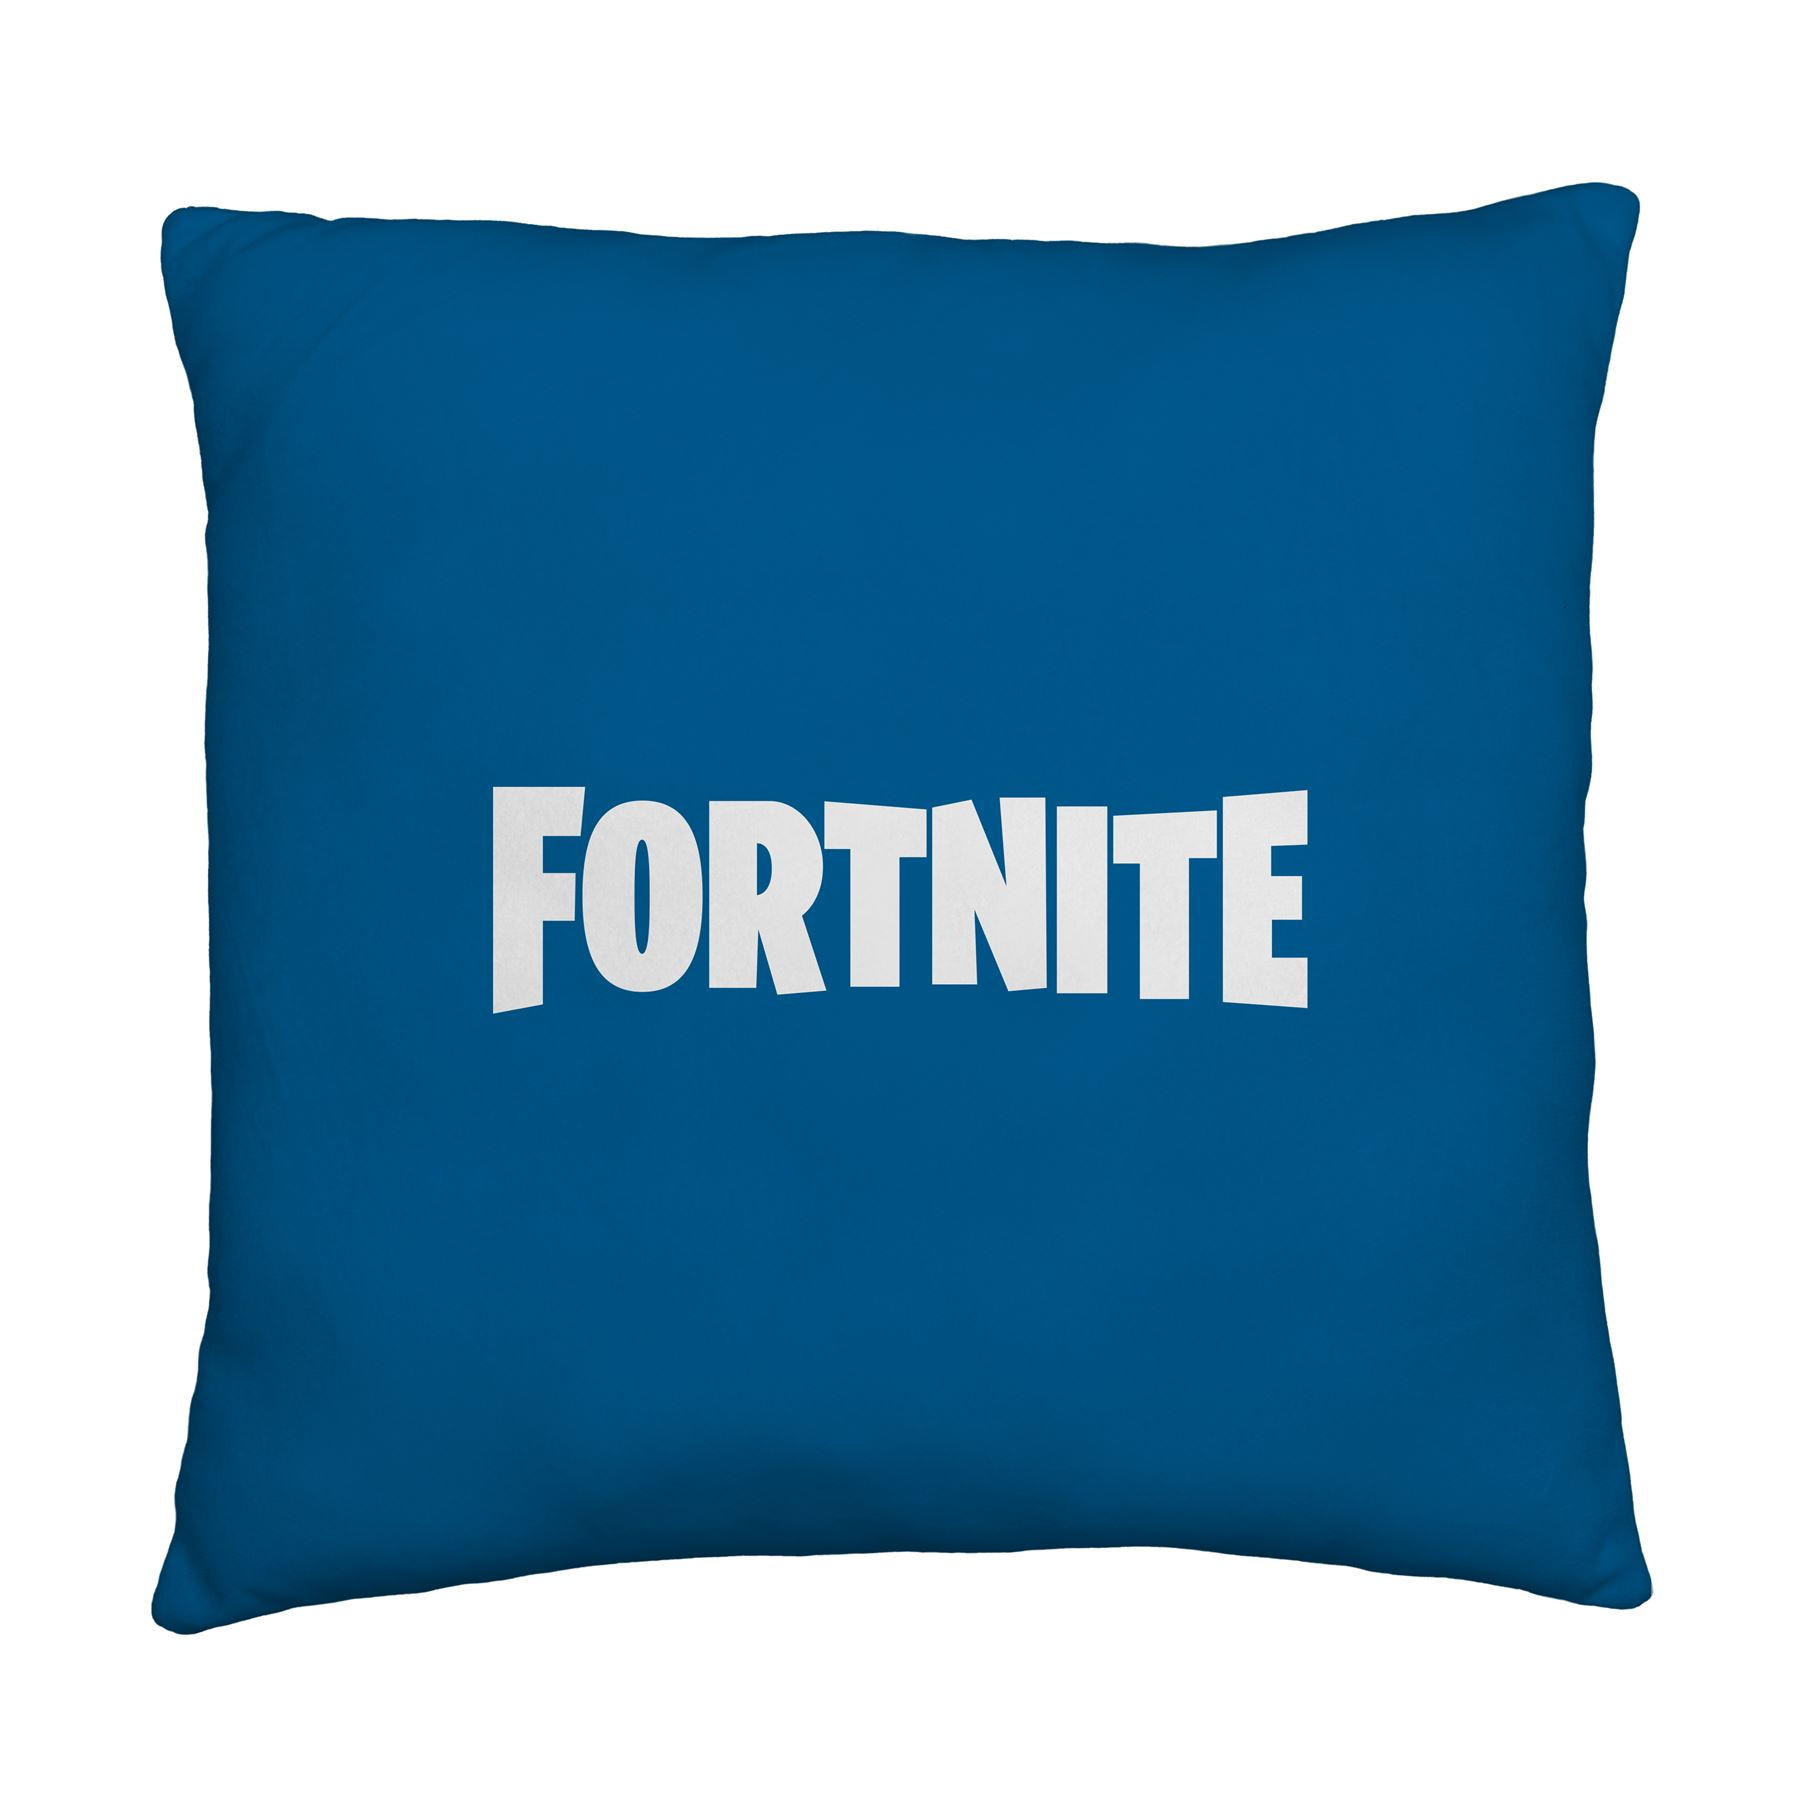 Official Ninja Games Square Cushion Matches Bedding Gamer Youtuber Fortnite